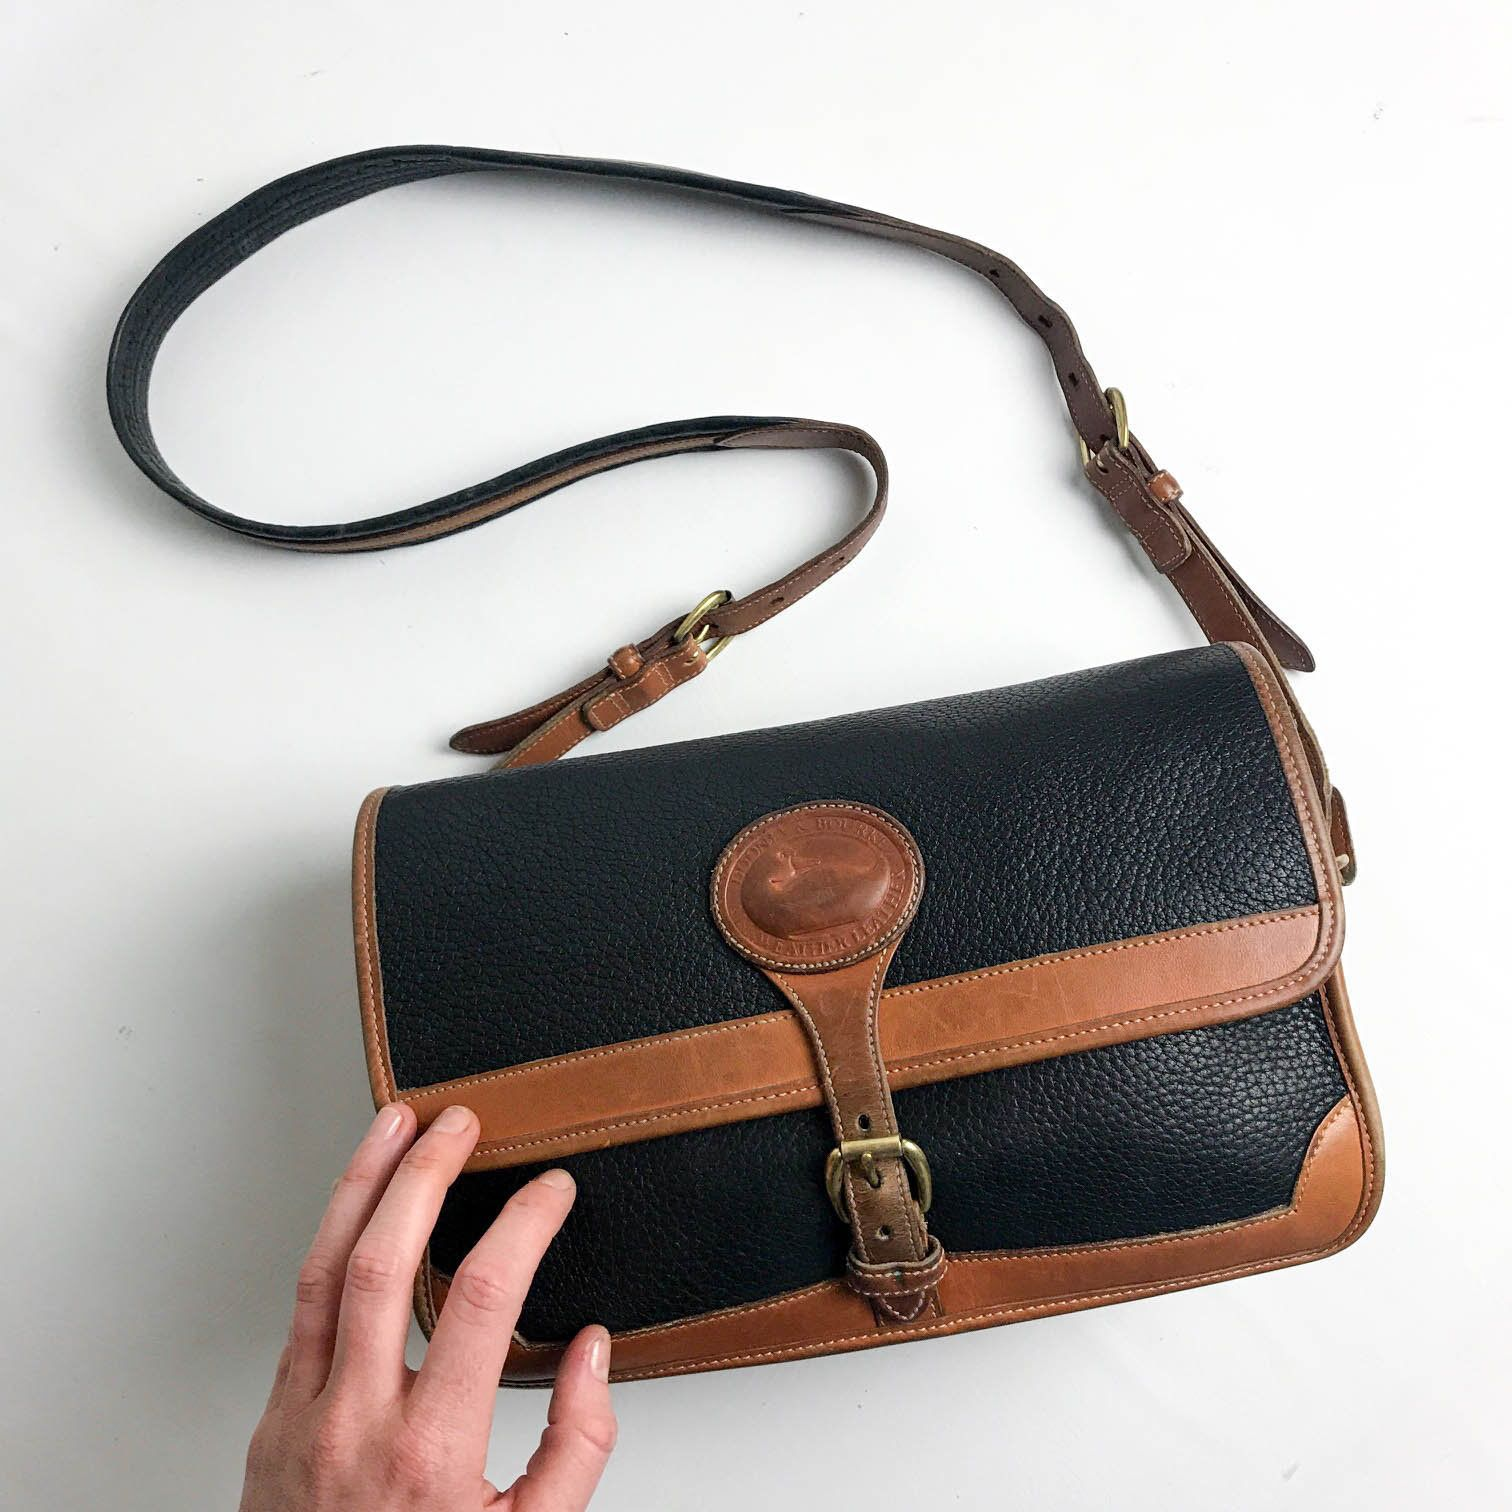 06554b624a8a 90s Vintage Dooney and Bourke Black and Brown Pebbled Leather Crossbody Bag